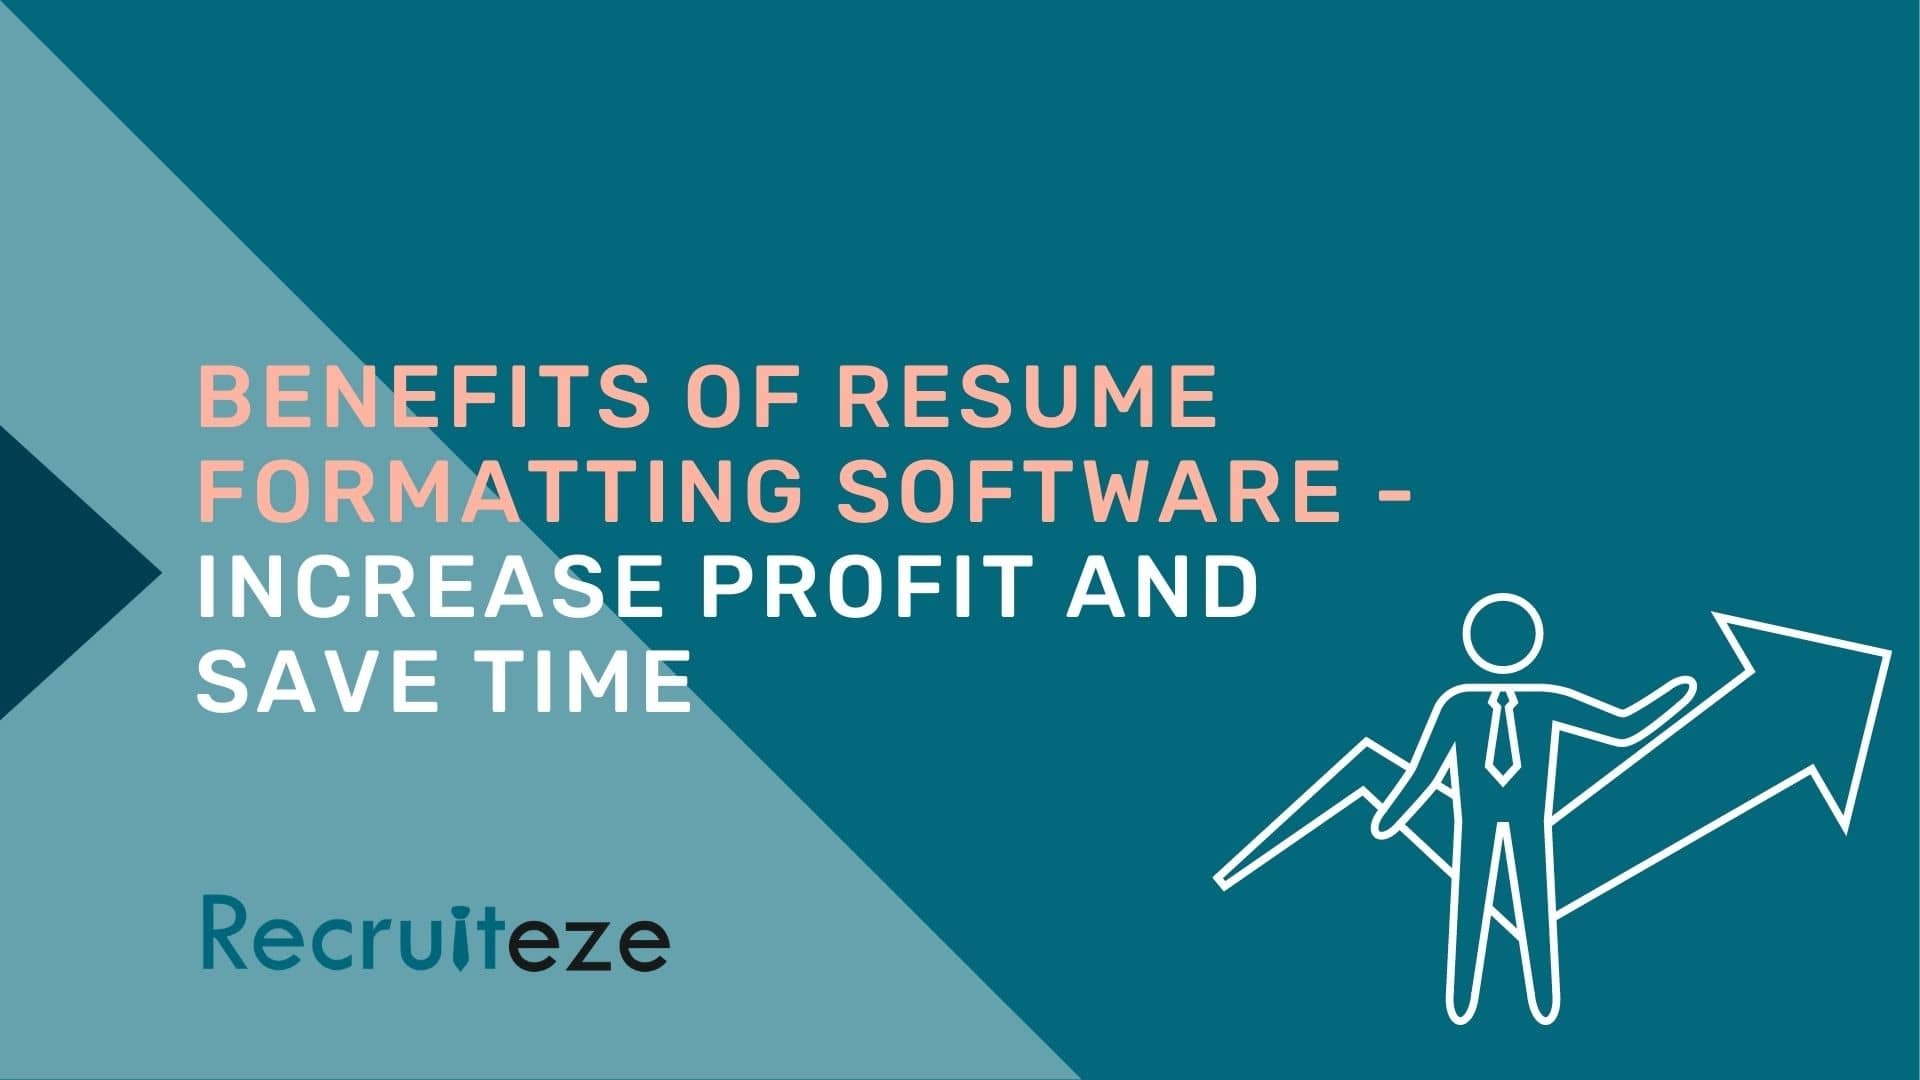 Benefits of resume formatting software - Recruiteze featured image